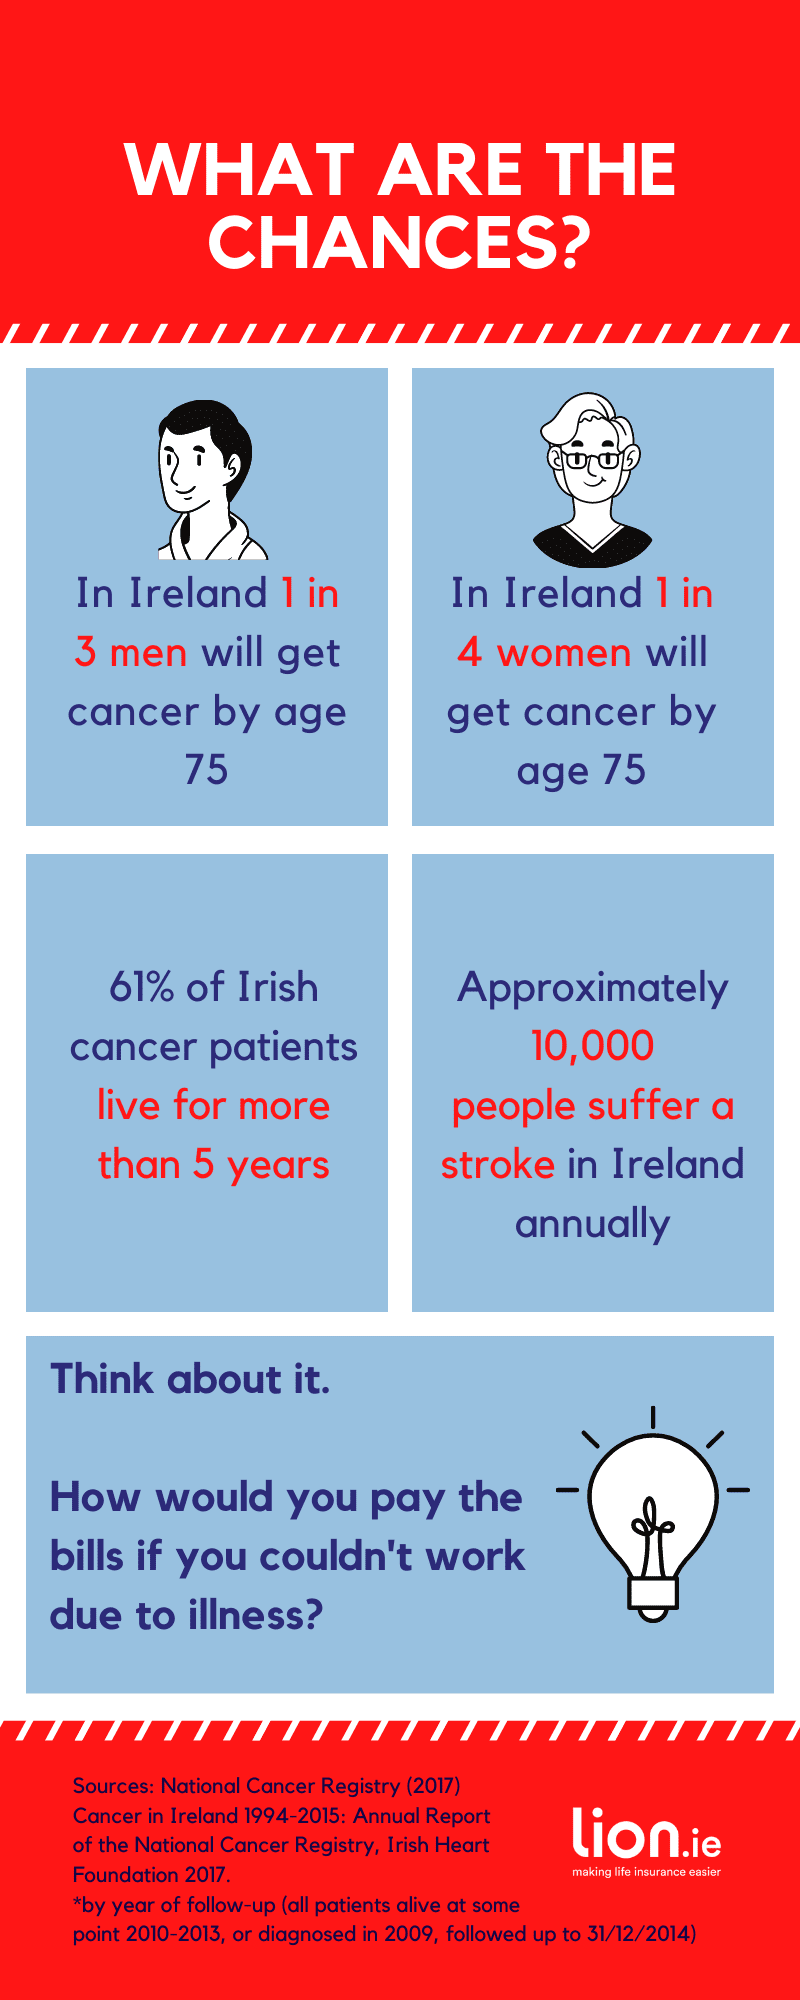 Chances of a Serious Illness Cover in Ireland (3)